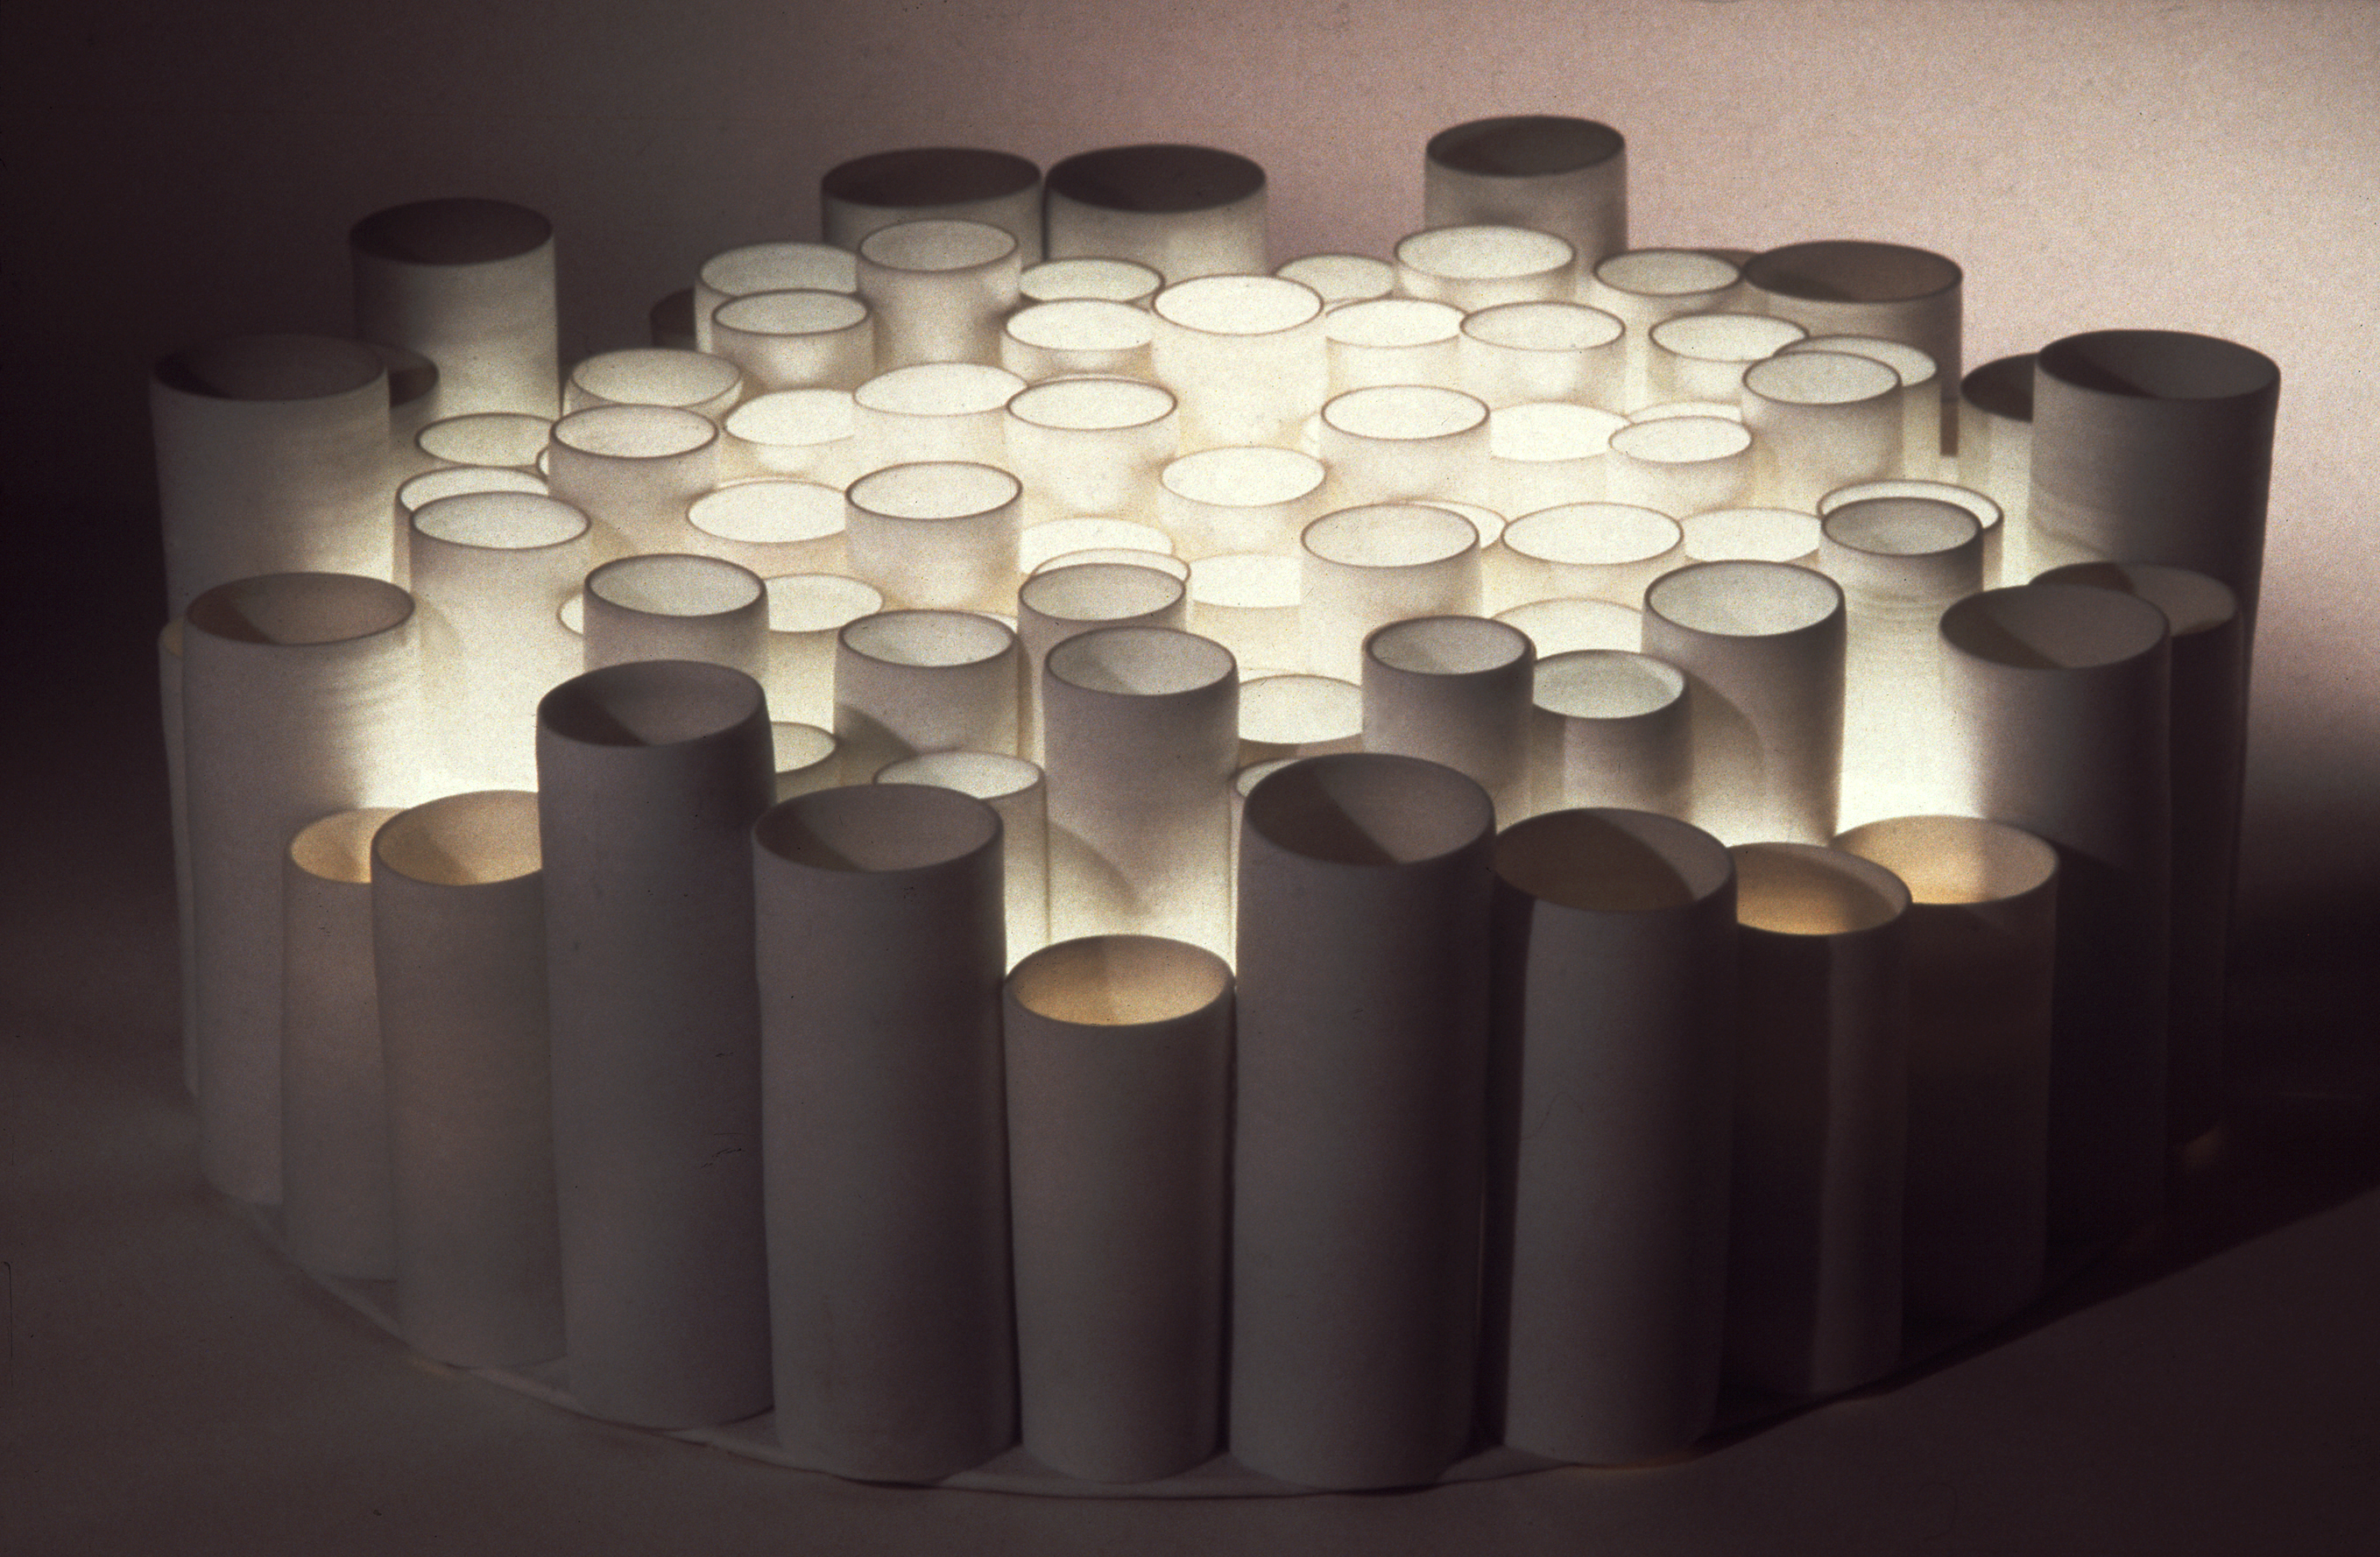 26. Circle of Light Cylinders.